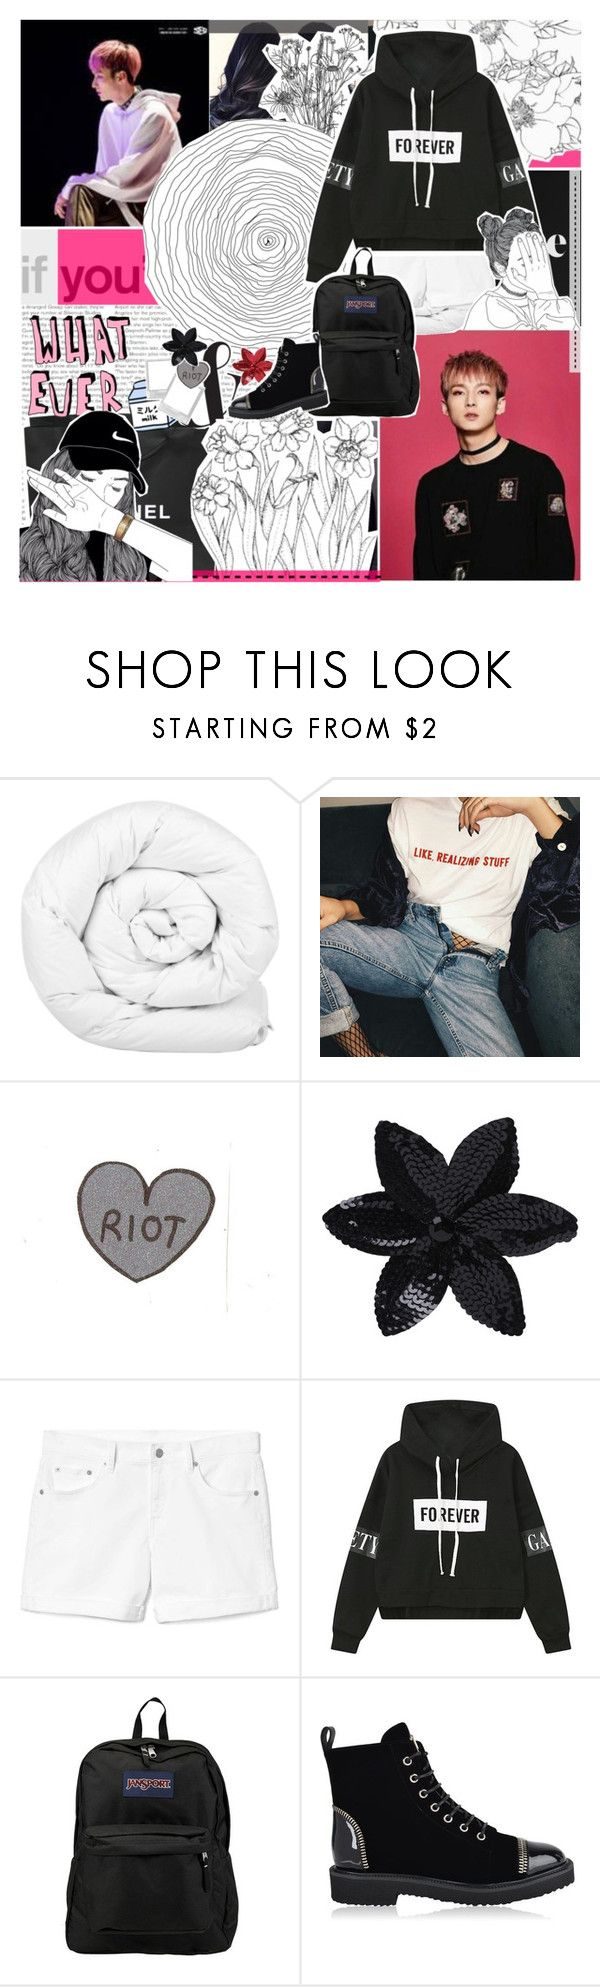 """Zuho imagine; One shot; Fluff; My friend's ex-boyfriend"" by baekyeoltaekook on Polyvore featuring Loren Hope, Brinkhaus, Chanel, ASOS, Gap, JanSport and Giuseppe Zanotti"